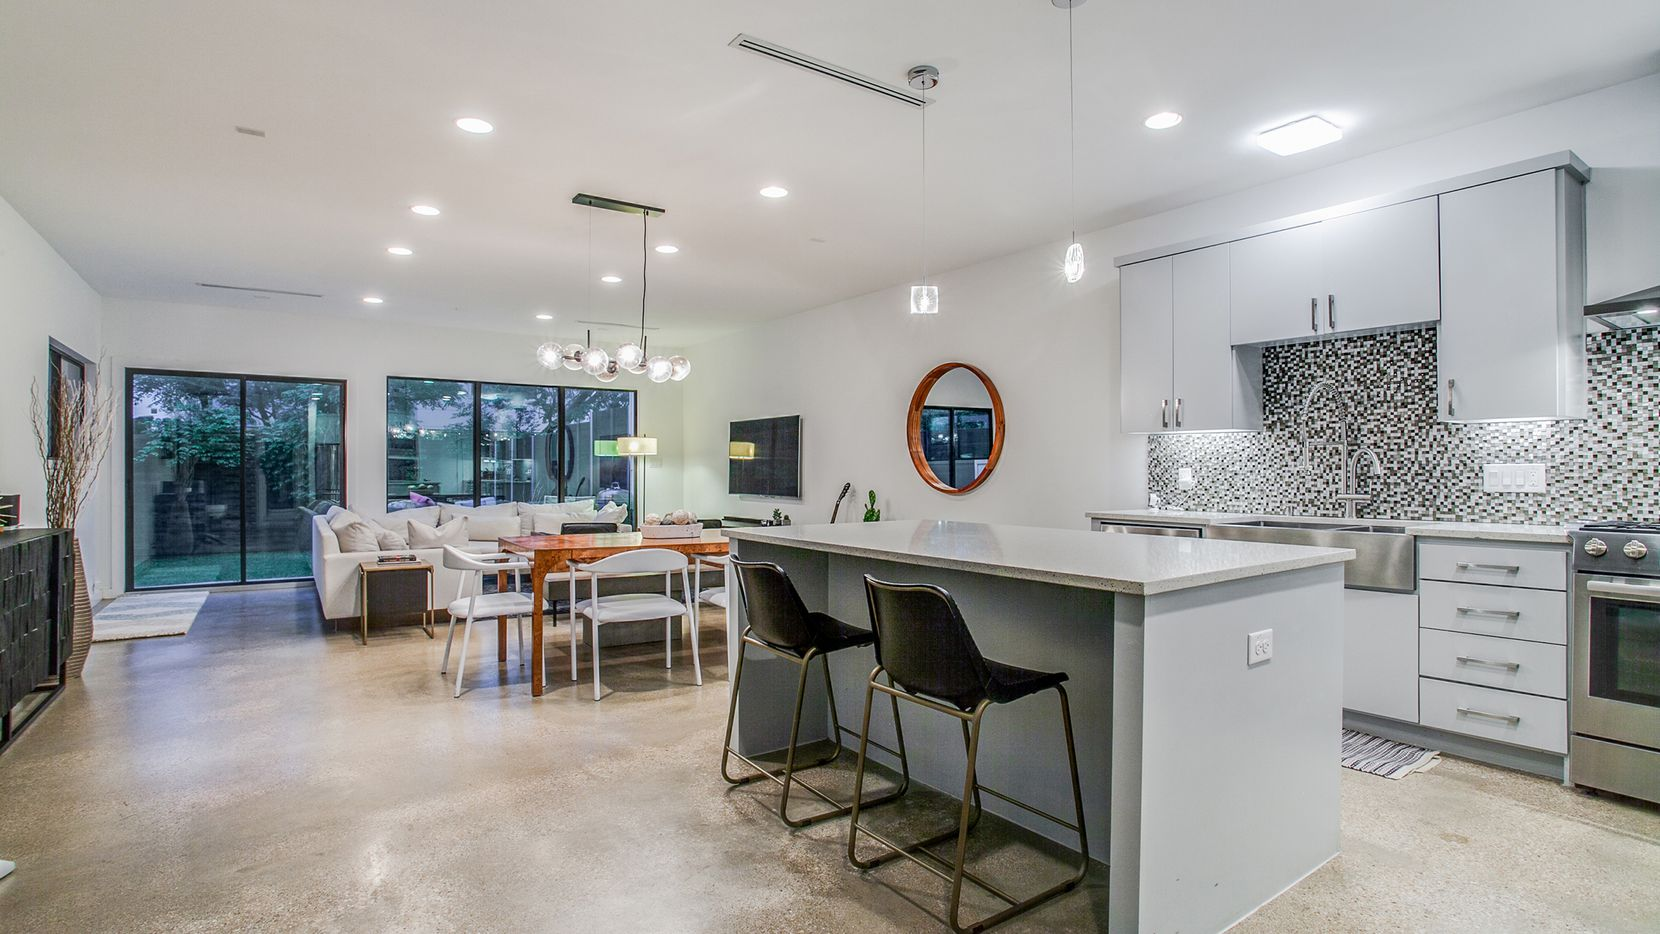 The modern home at 4214 Munger Ave. offers mood-lifting, light-filled rooms.